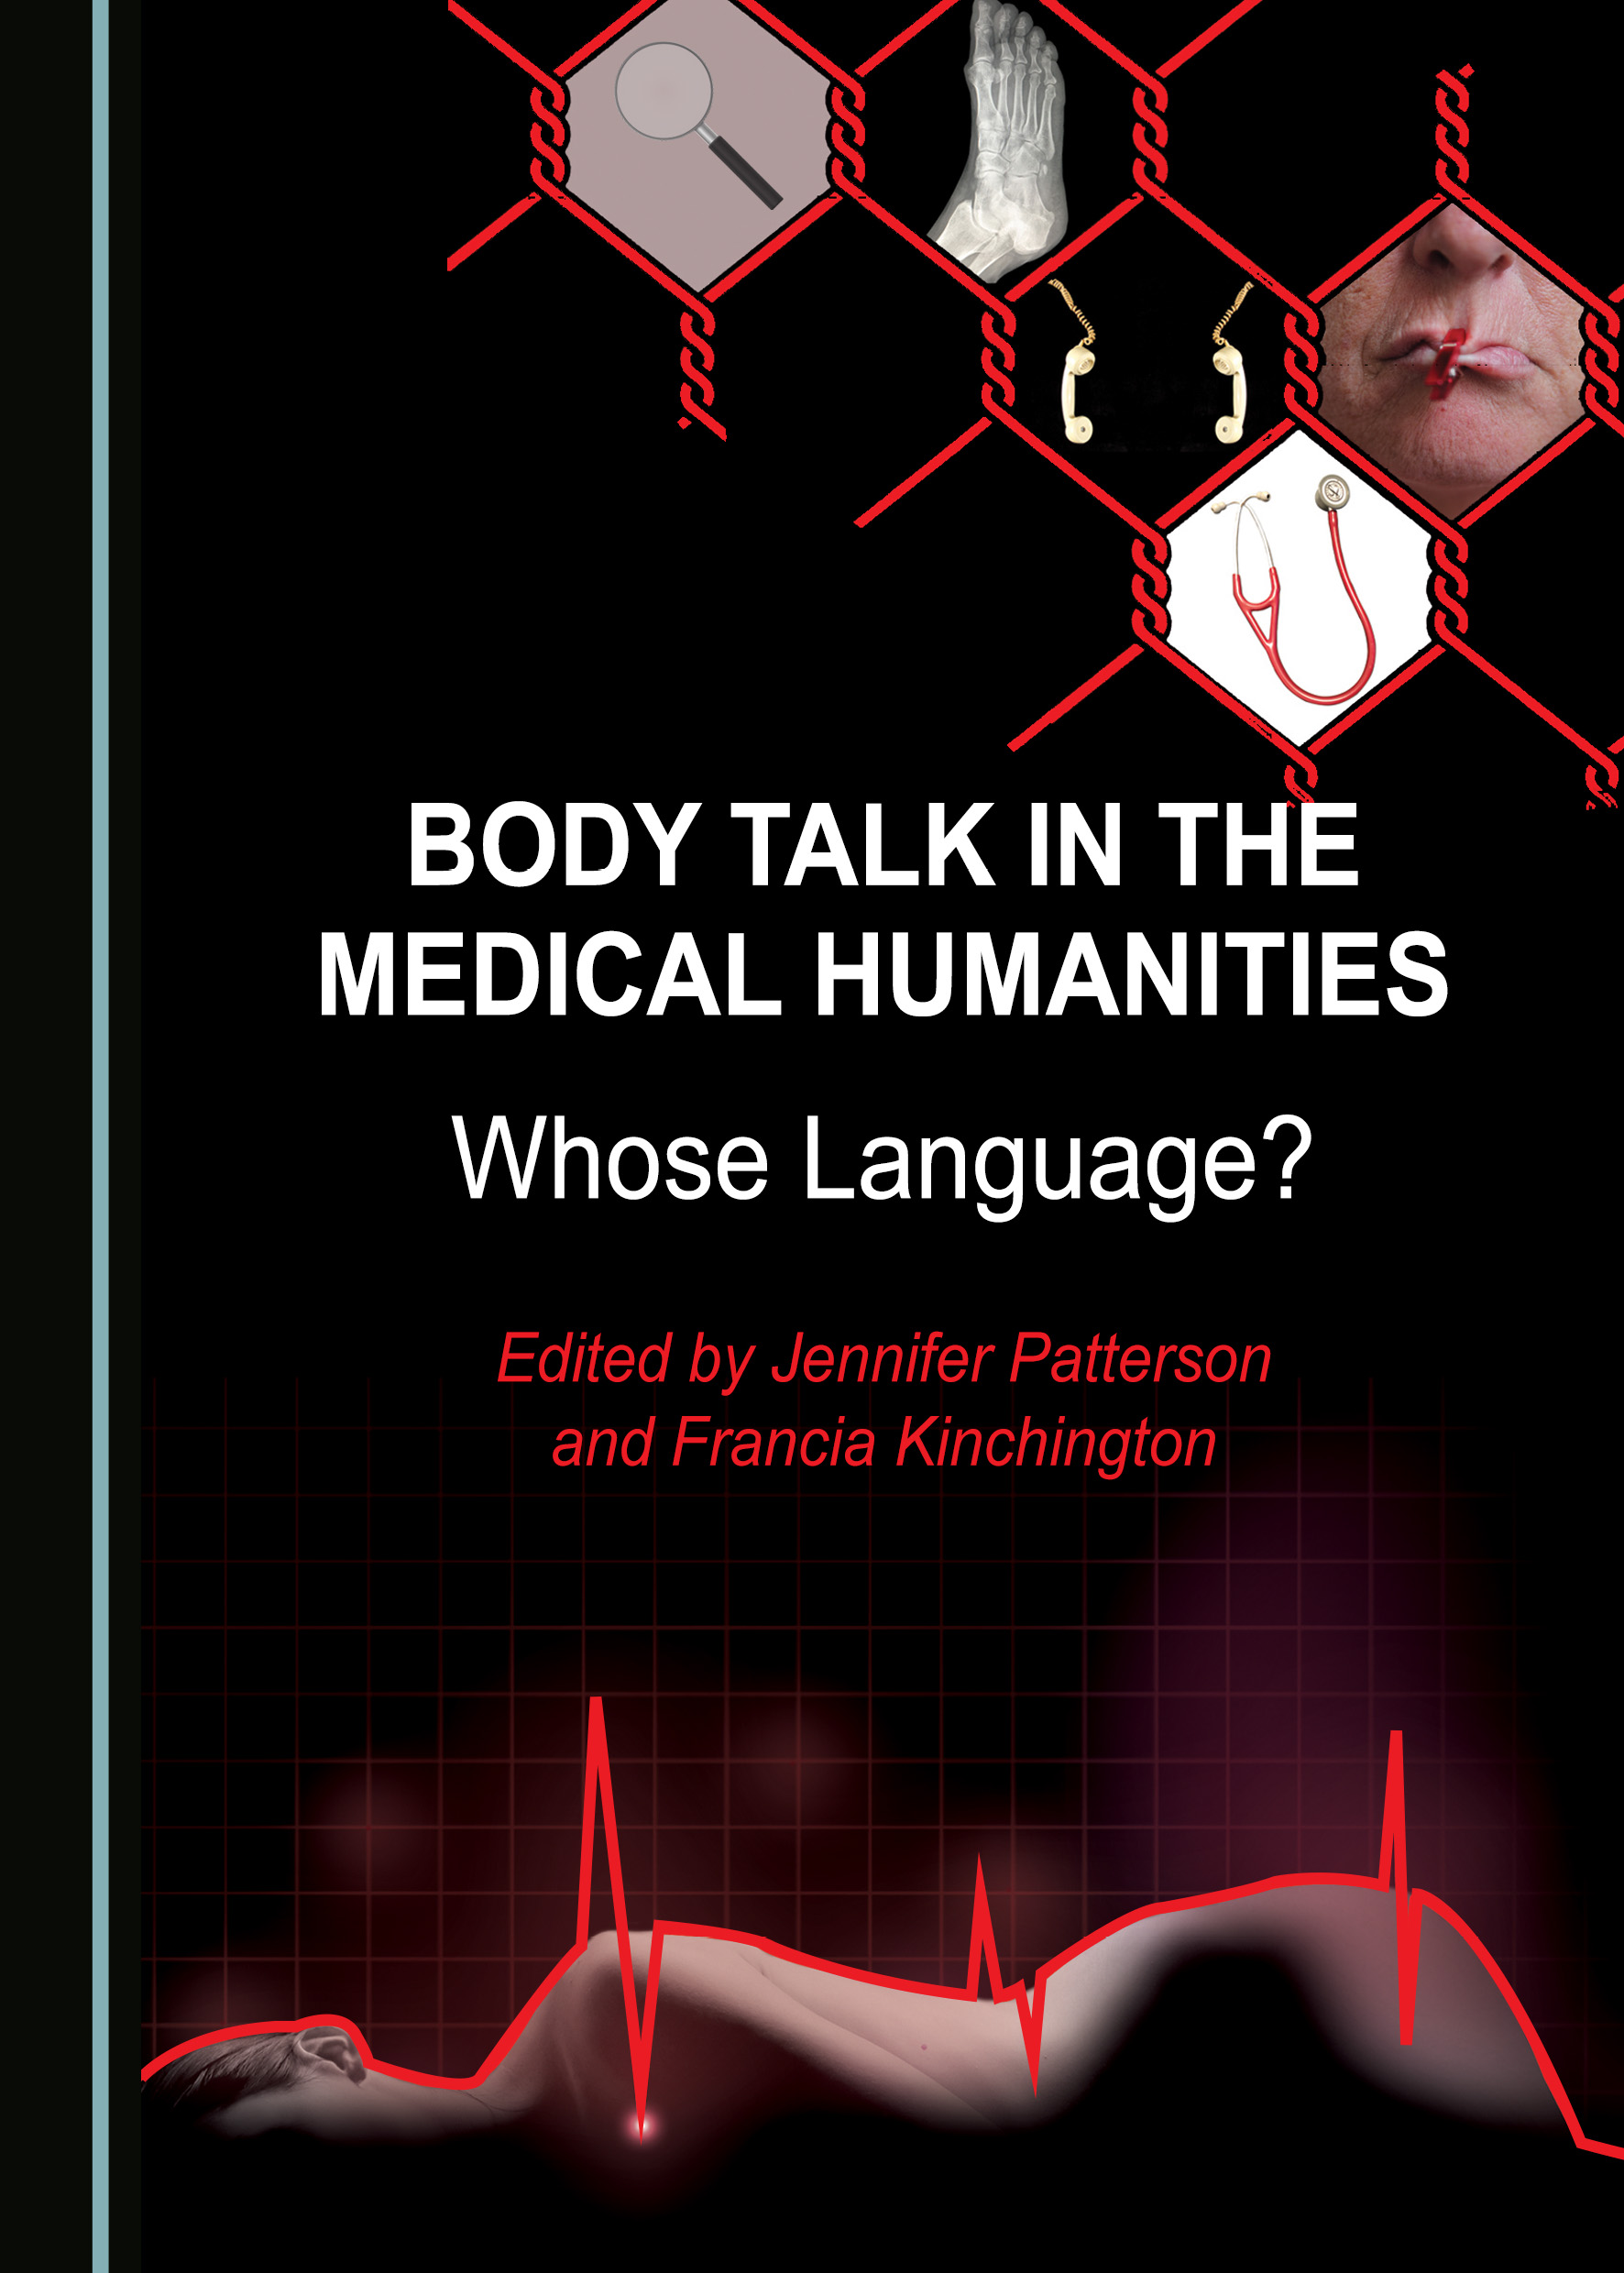 Body Talk in the Medical Humanities: Whose Language?